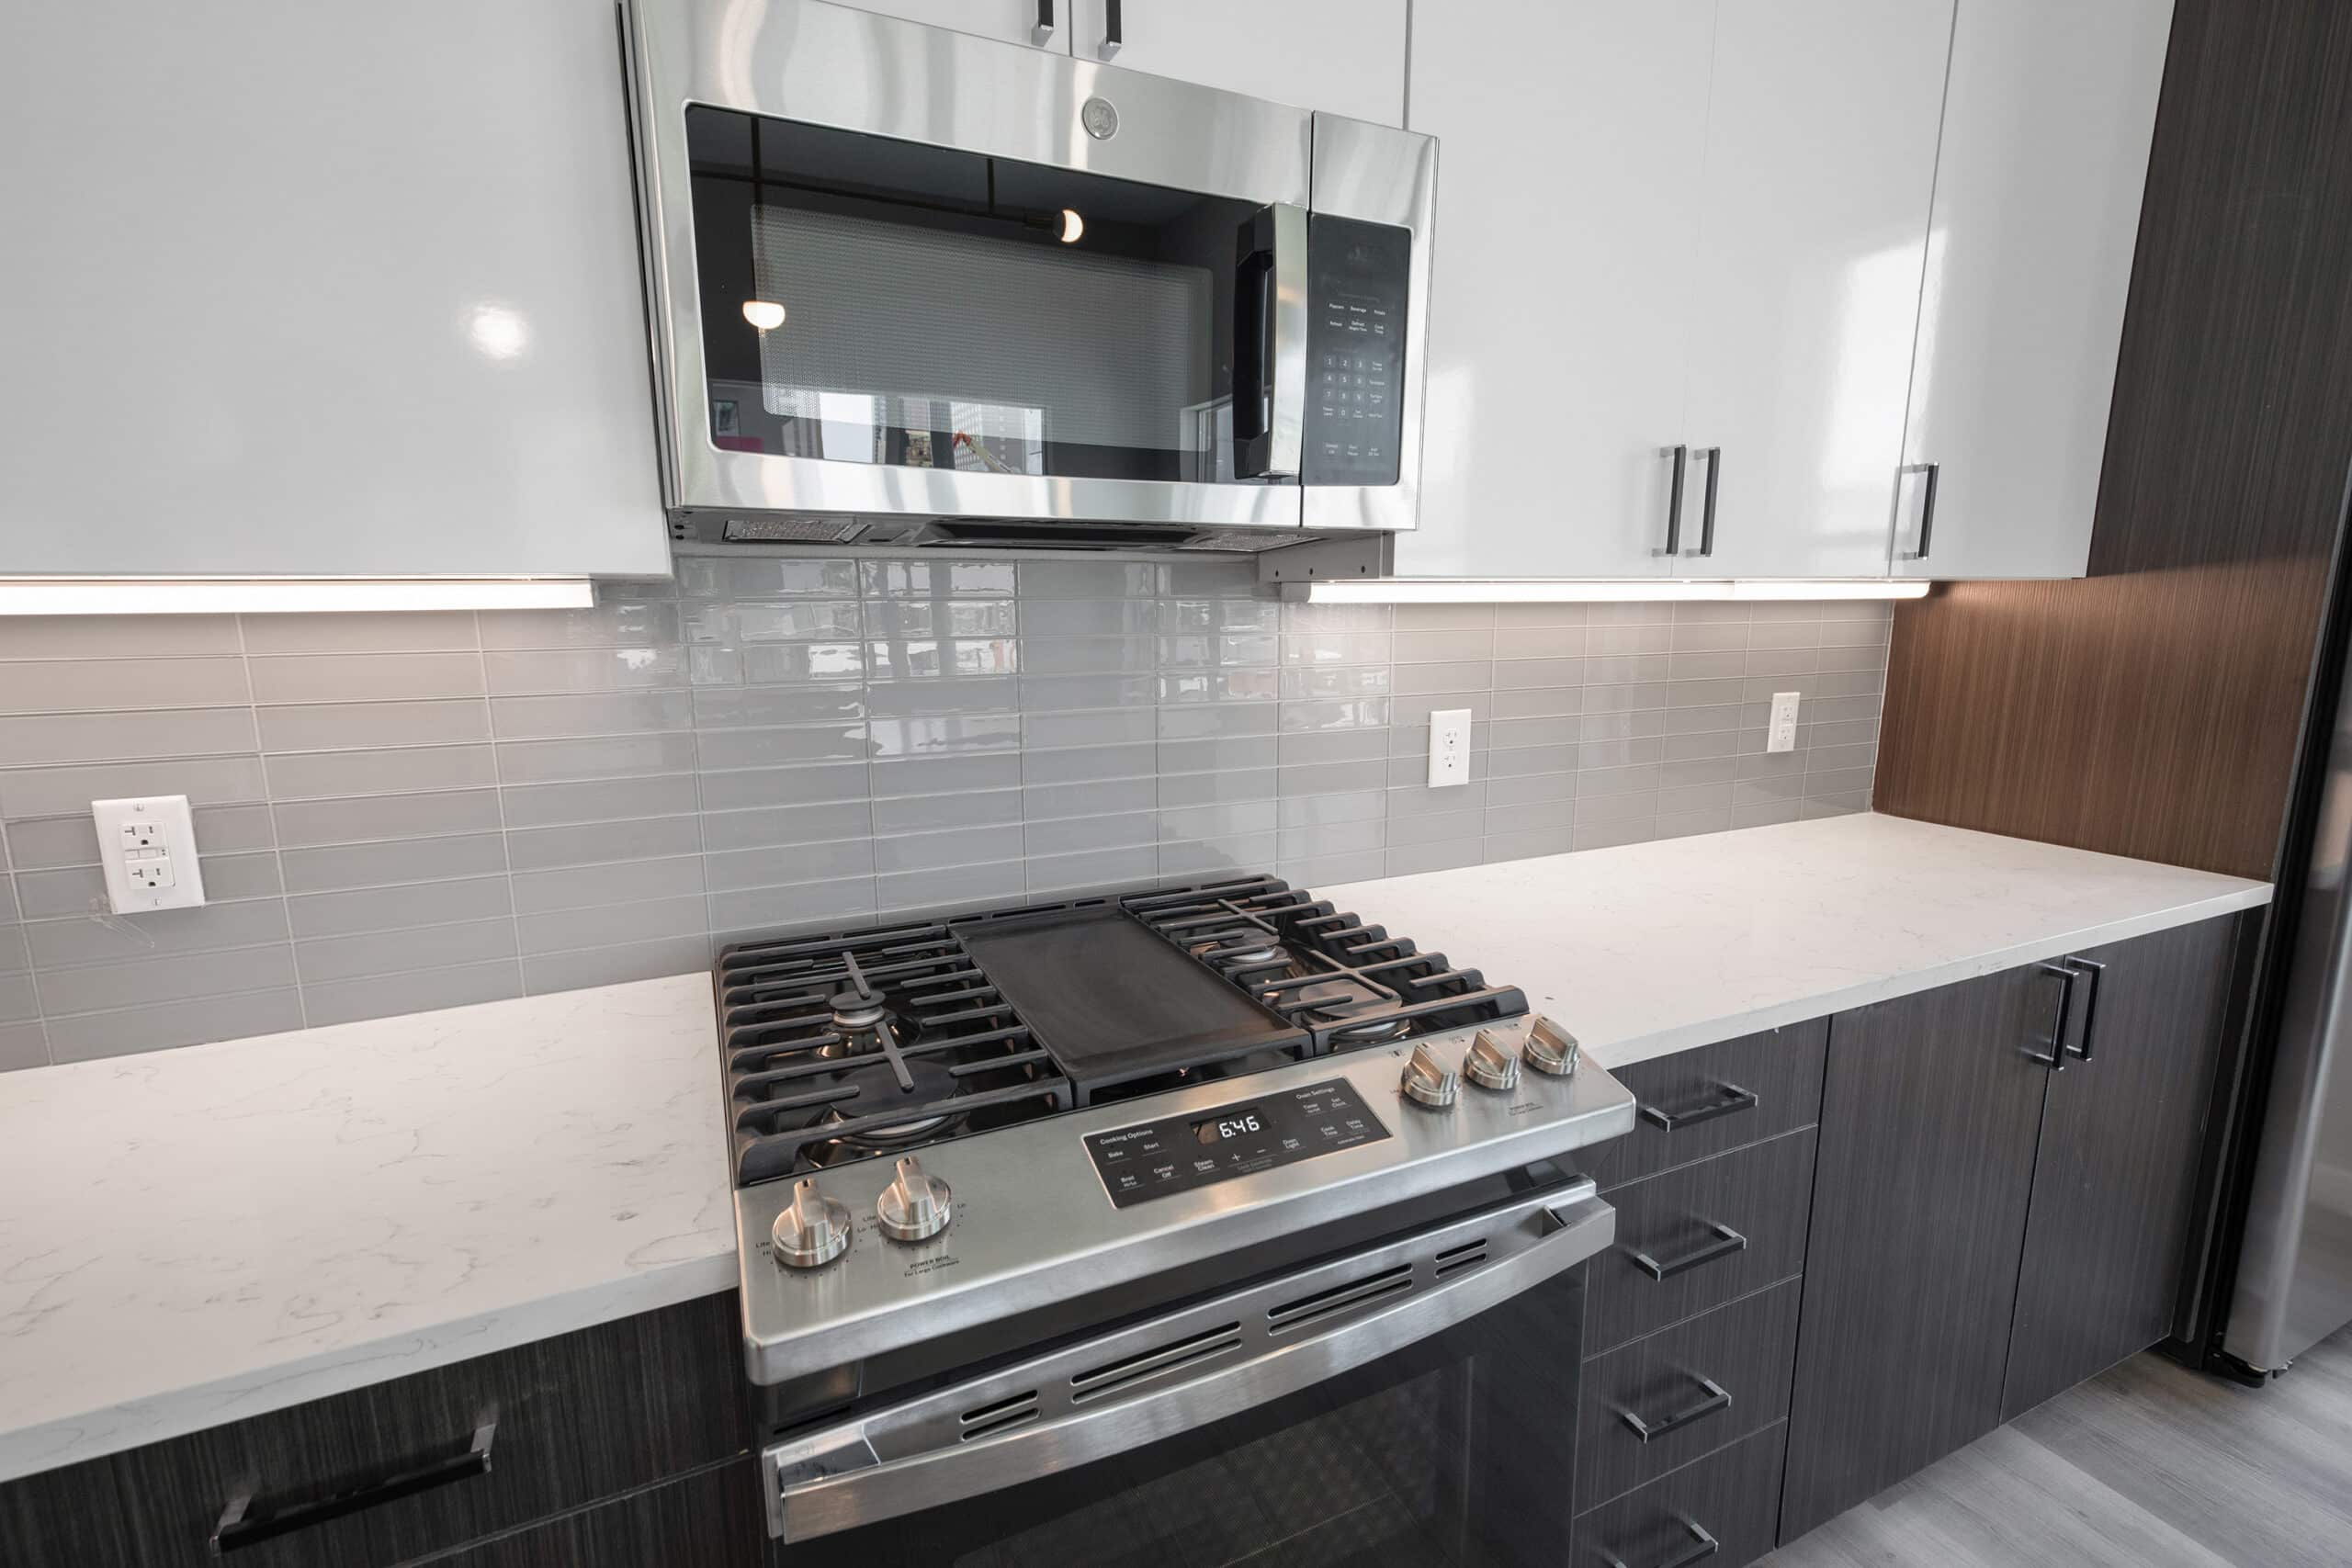 gas-range stove and microwave in apartment kitchen